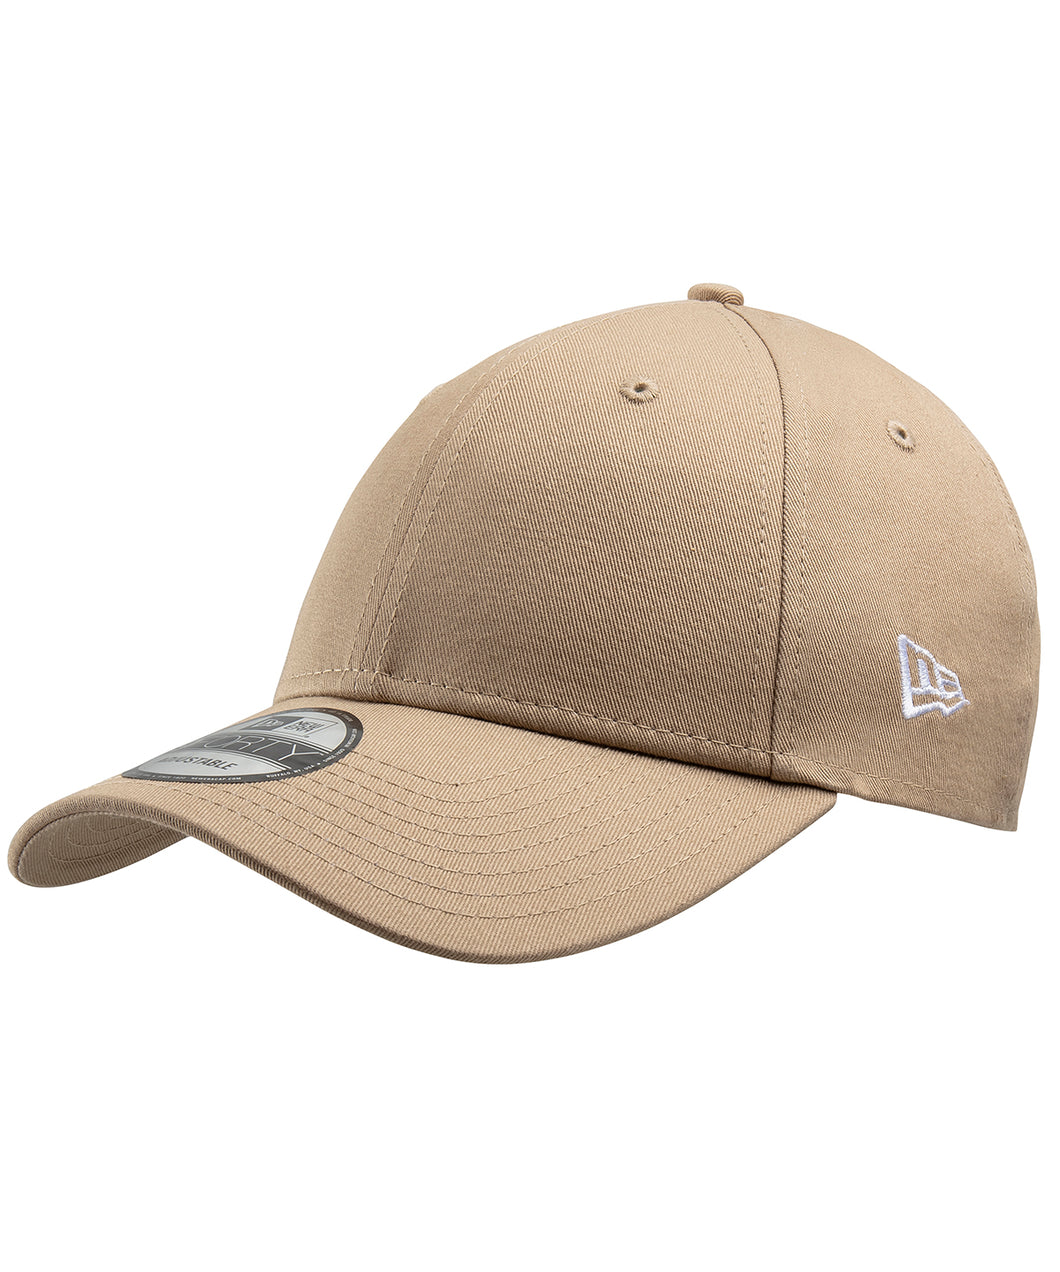 Casquette New Era 9Forty sable